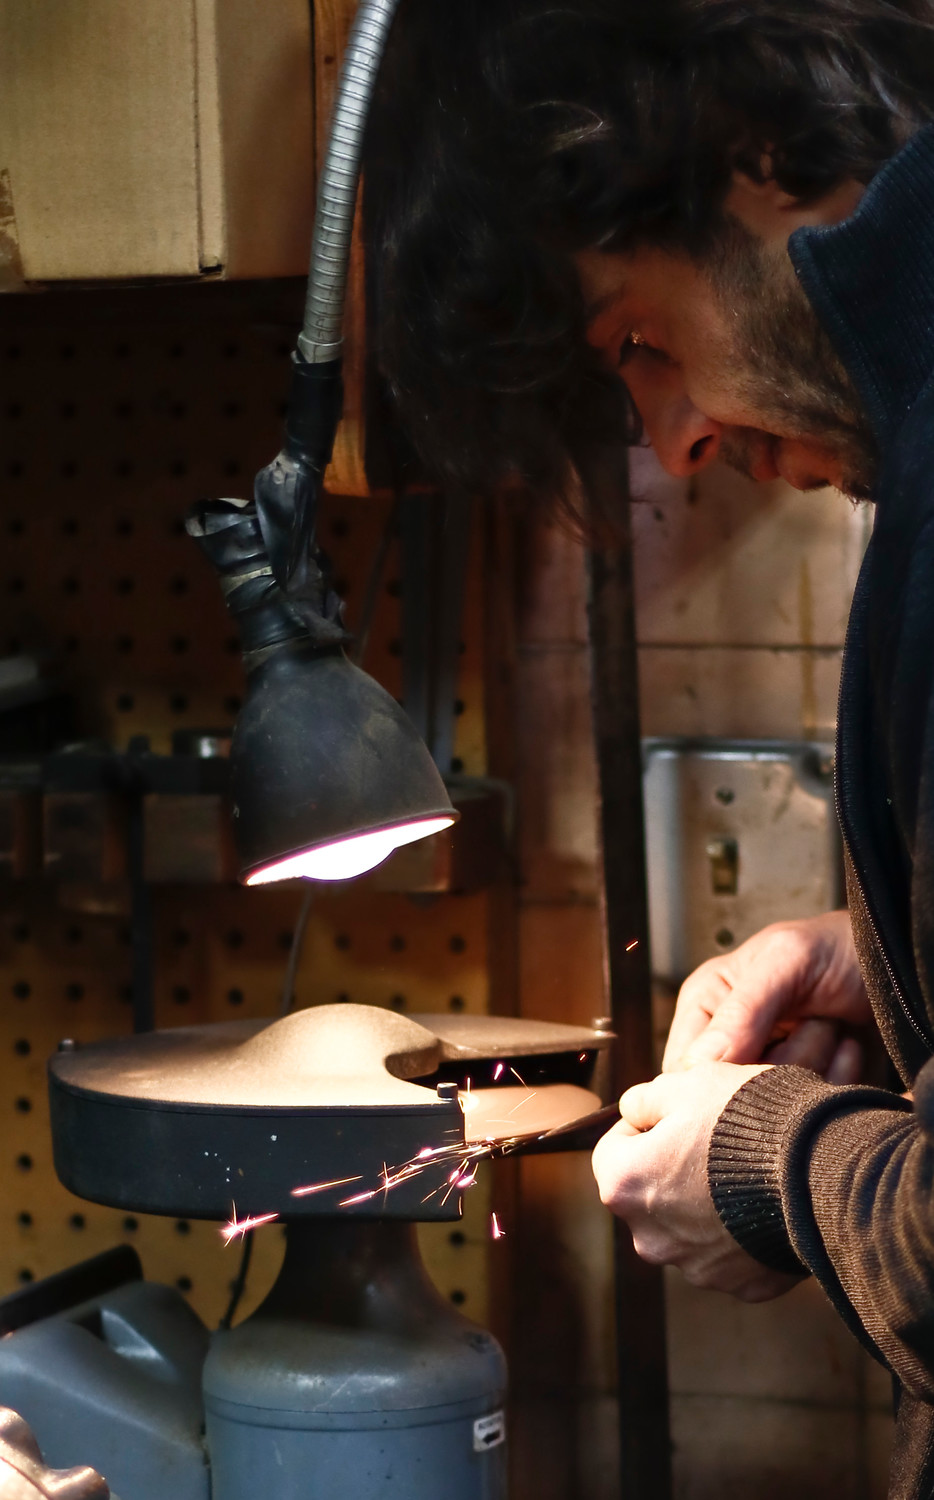 Simone Diana hones the chisel he is using to carve the edges of a new bass.